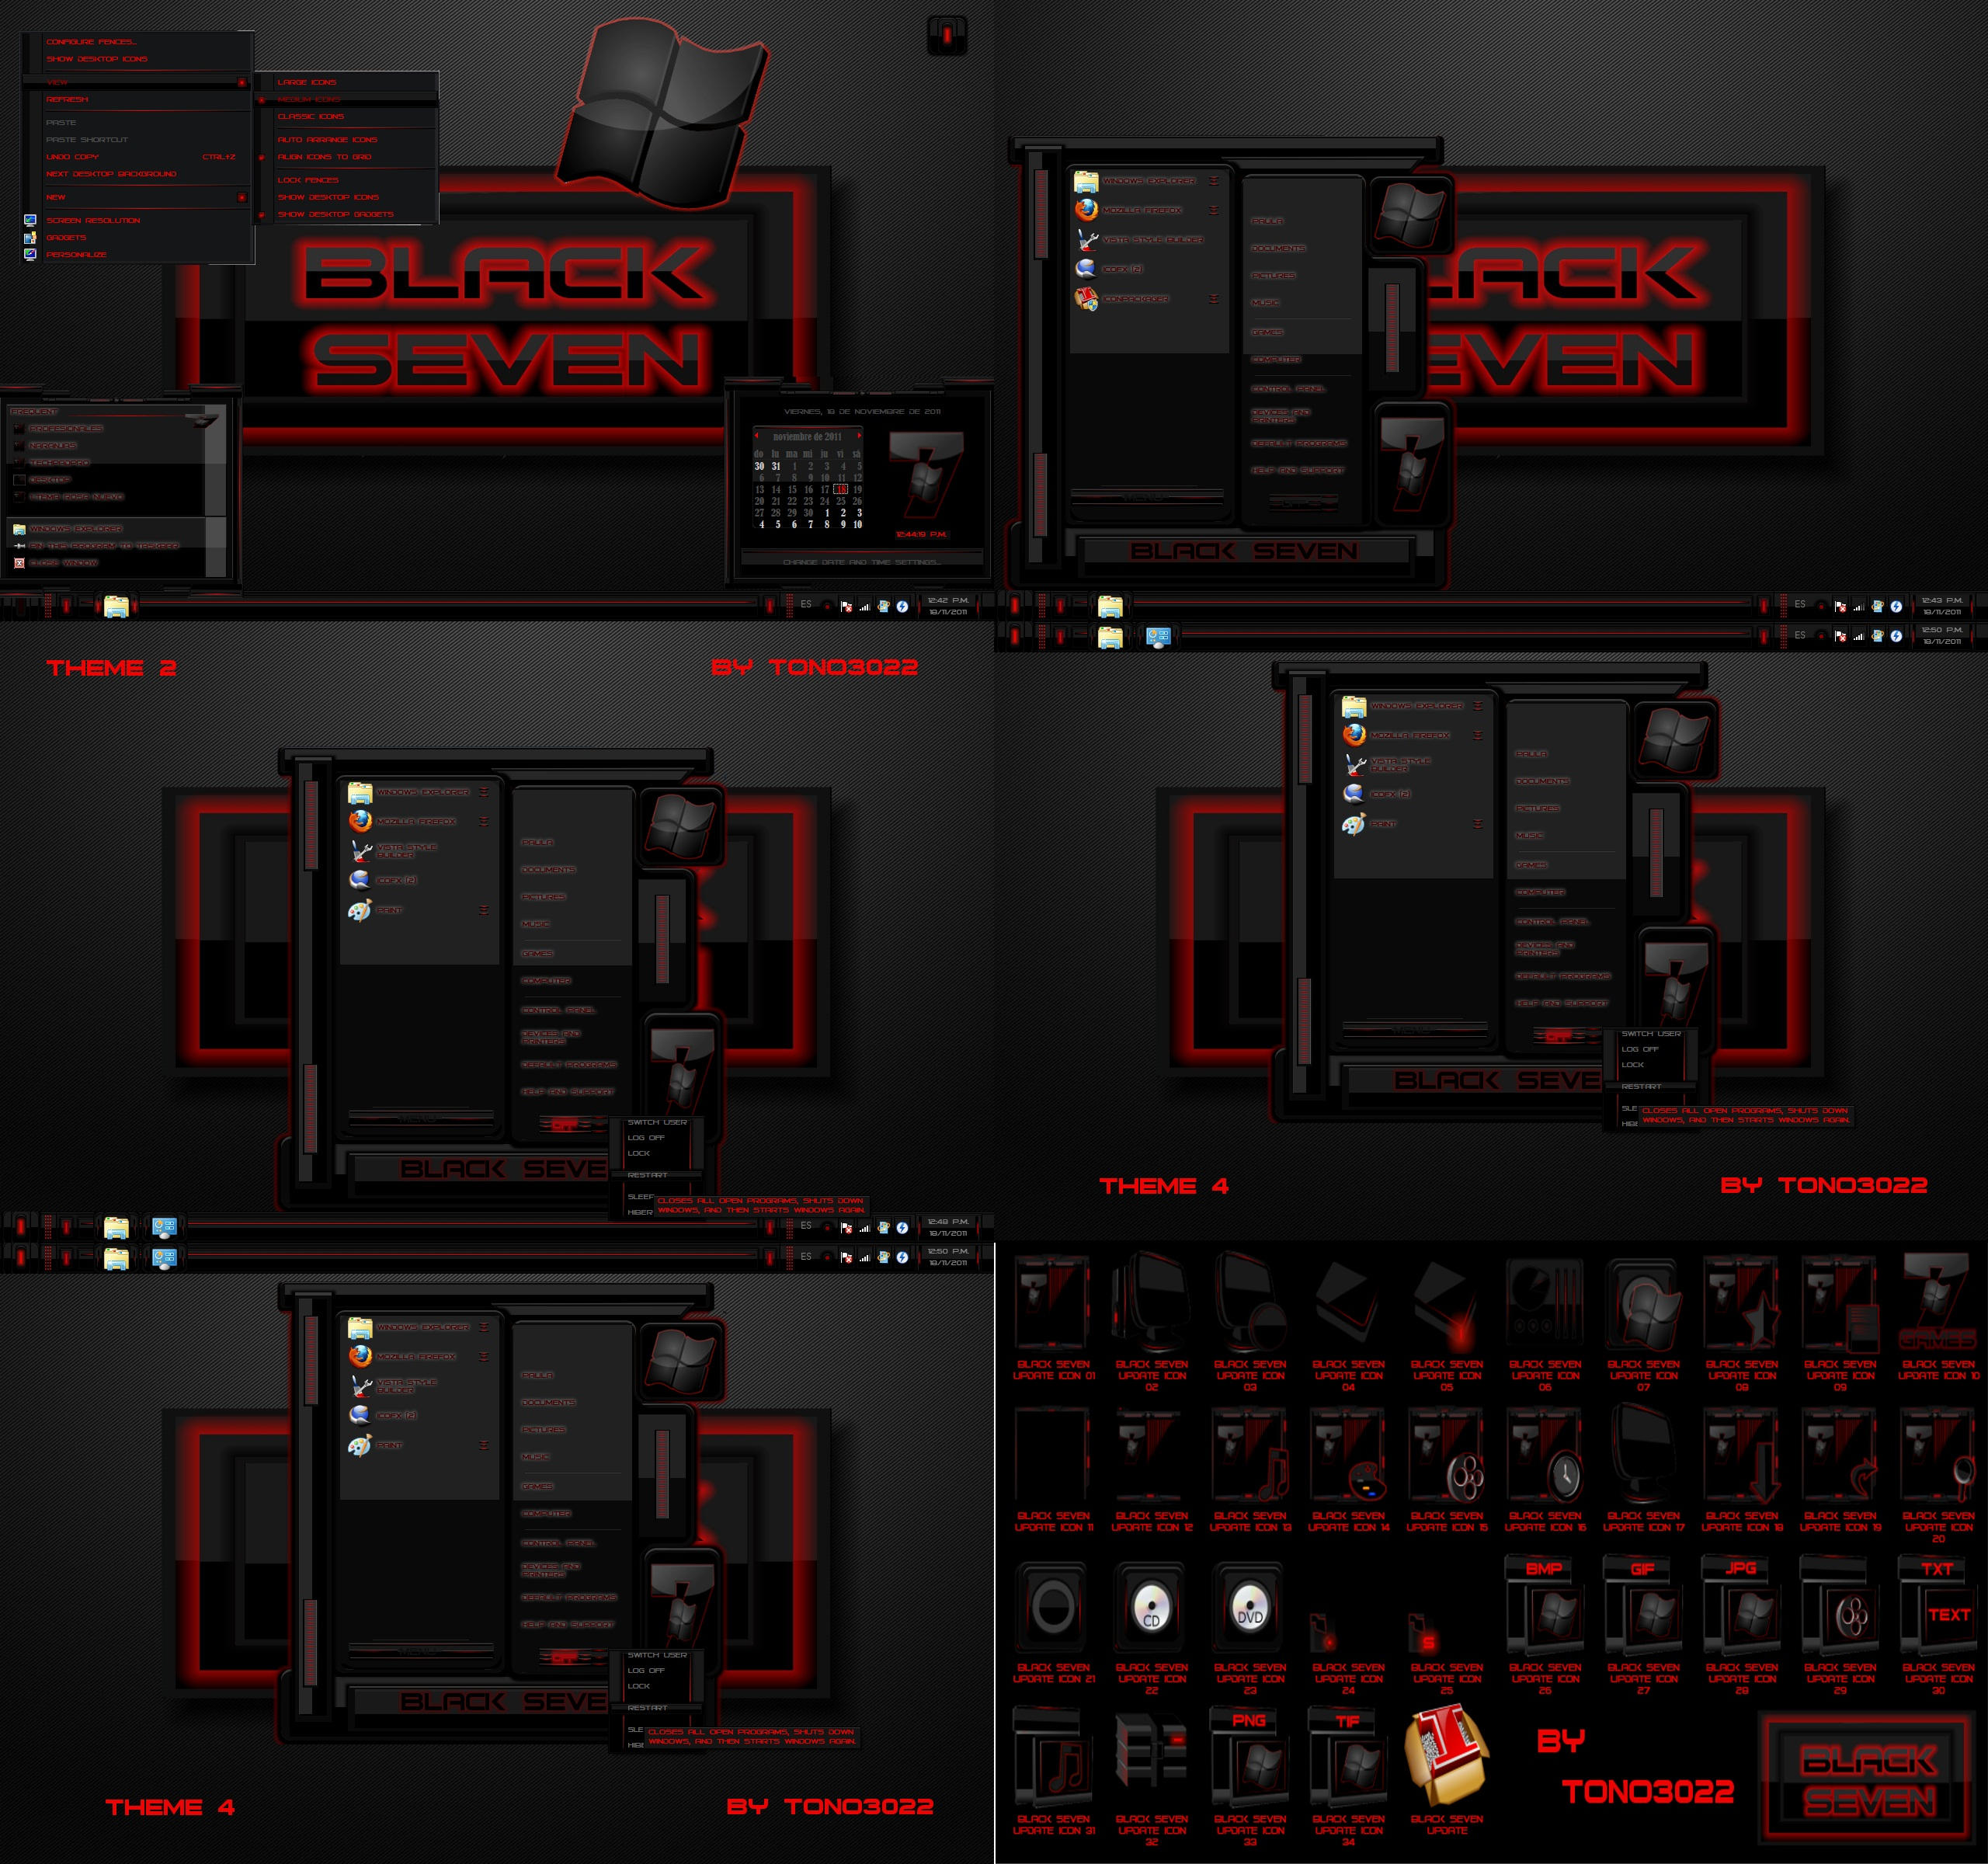 Windows 7 theme black seven red by tono3022 on deviantart for Window 07 themes